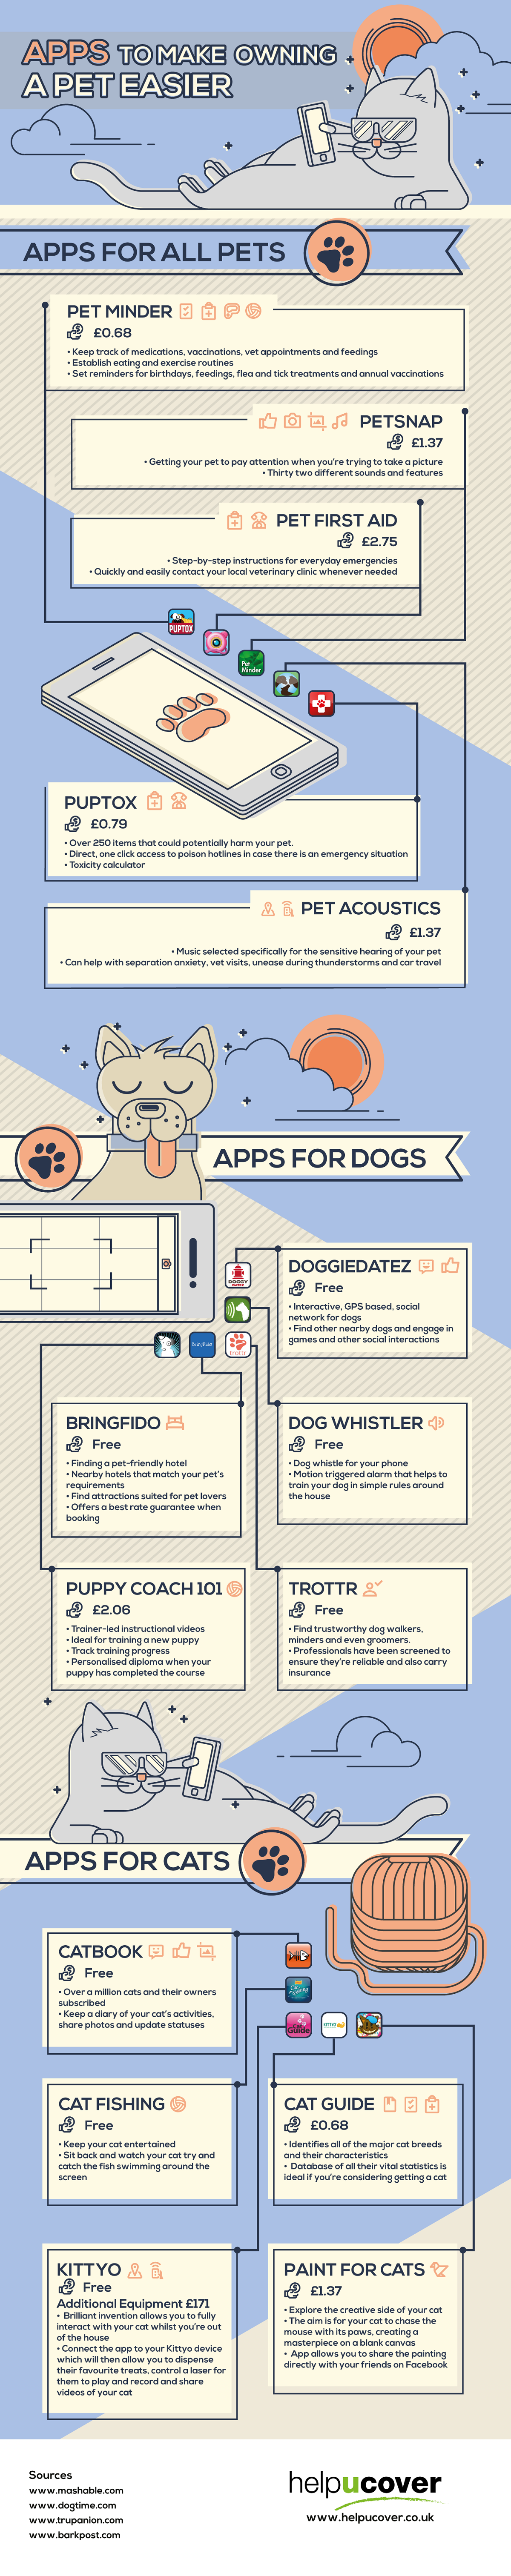 The Best Apps for Pet Owners